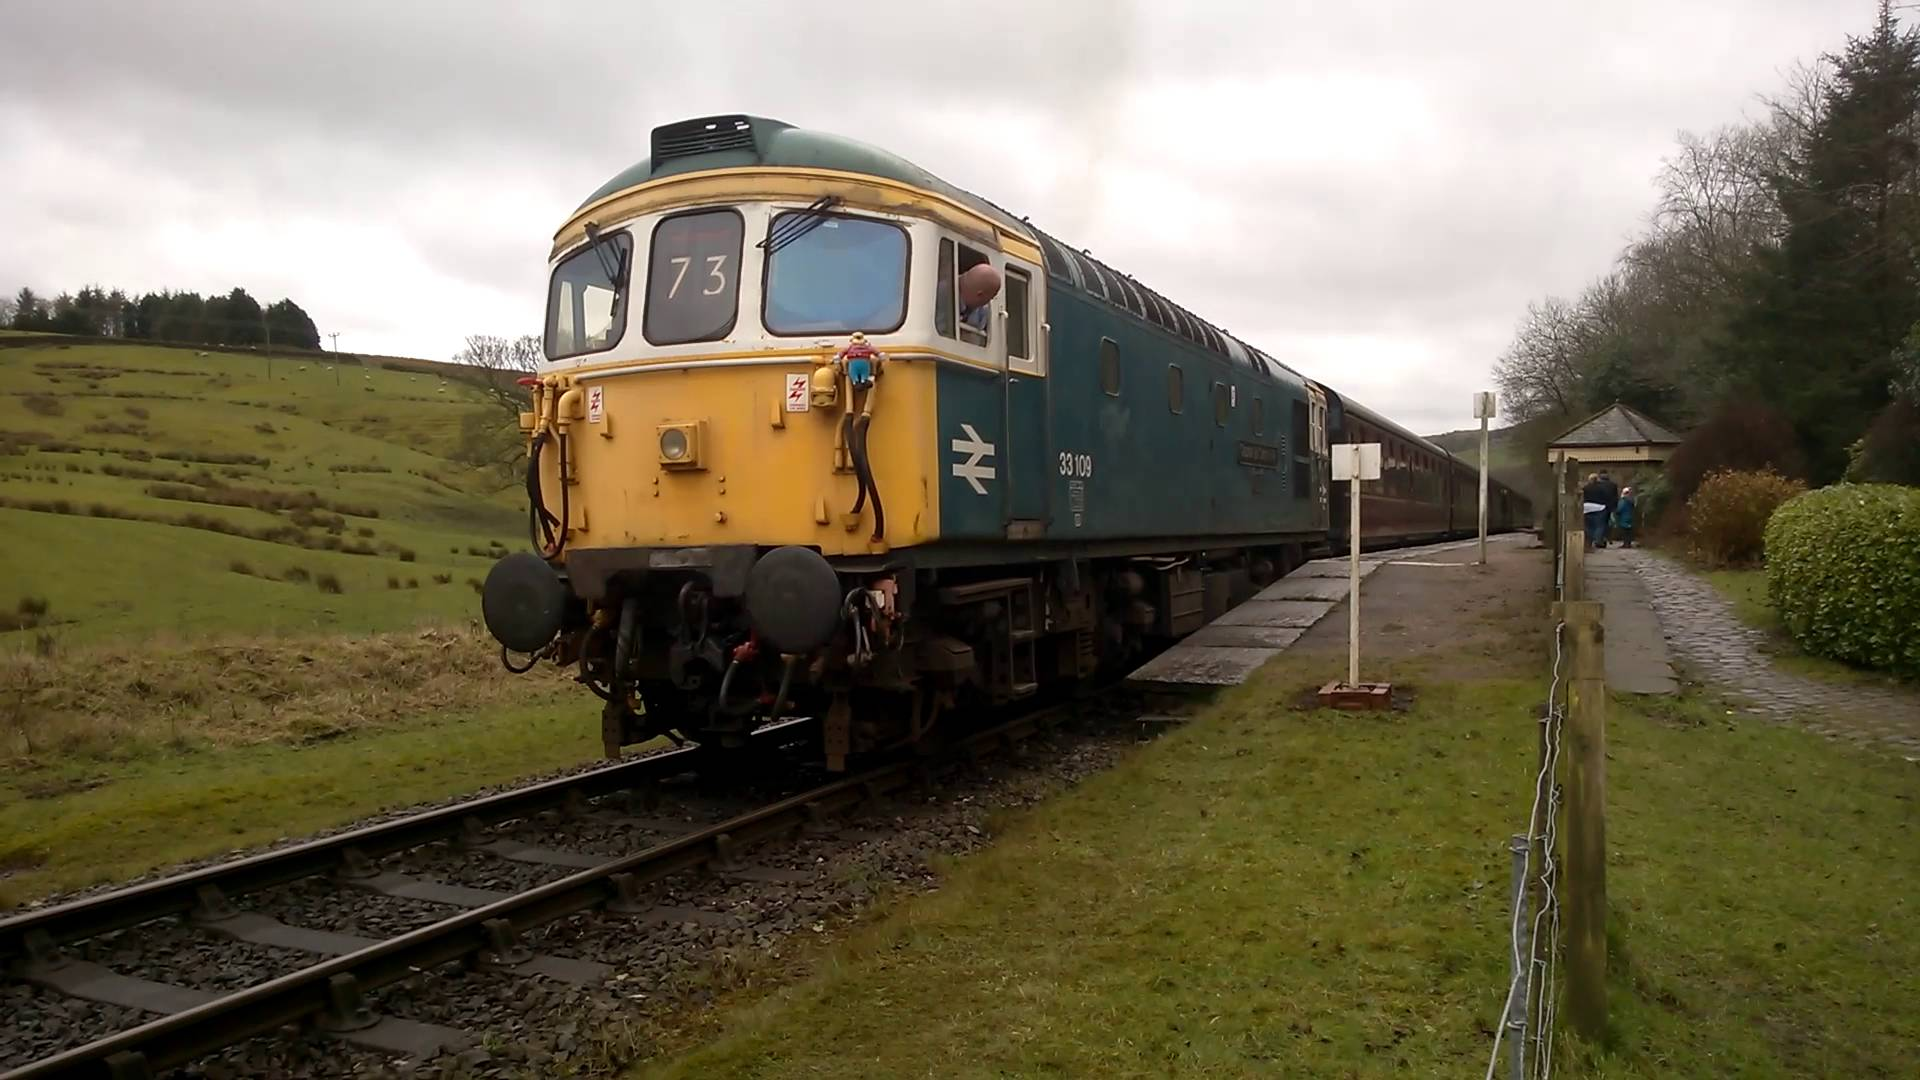 Class 33 No. 33109 departs Irwell Vale on the East Lancs Railway during their 2016 Spring Diesel Gala